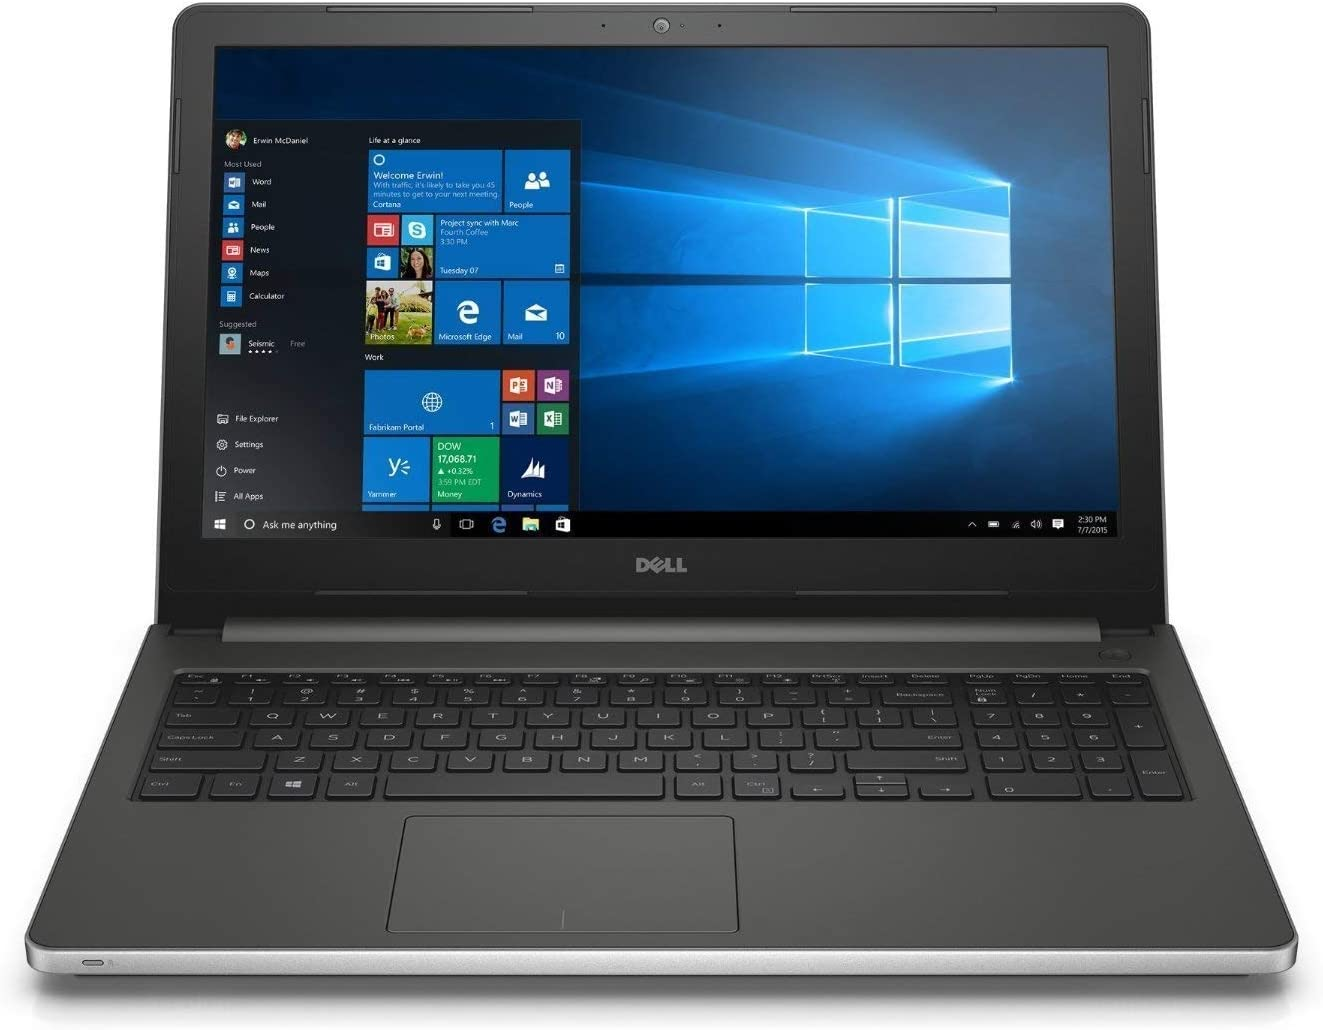 Best Laptop For Movies And Internet